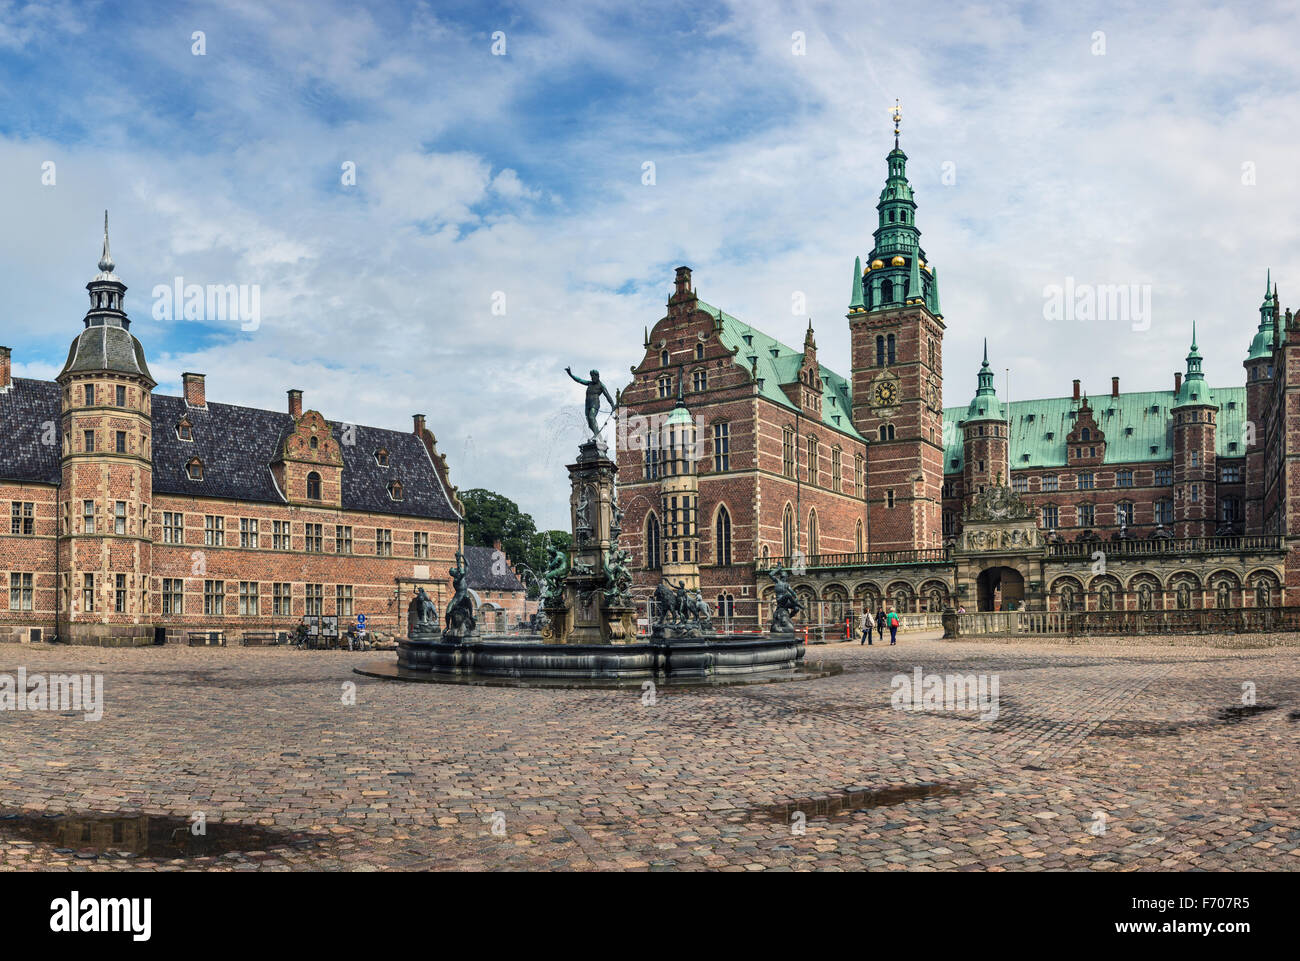 Frederiksborg Castle (Slott), a Baroque palatial complex in Hillerod, Denmark - Stock Image